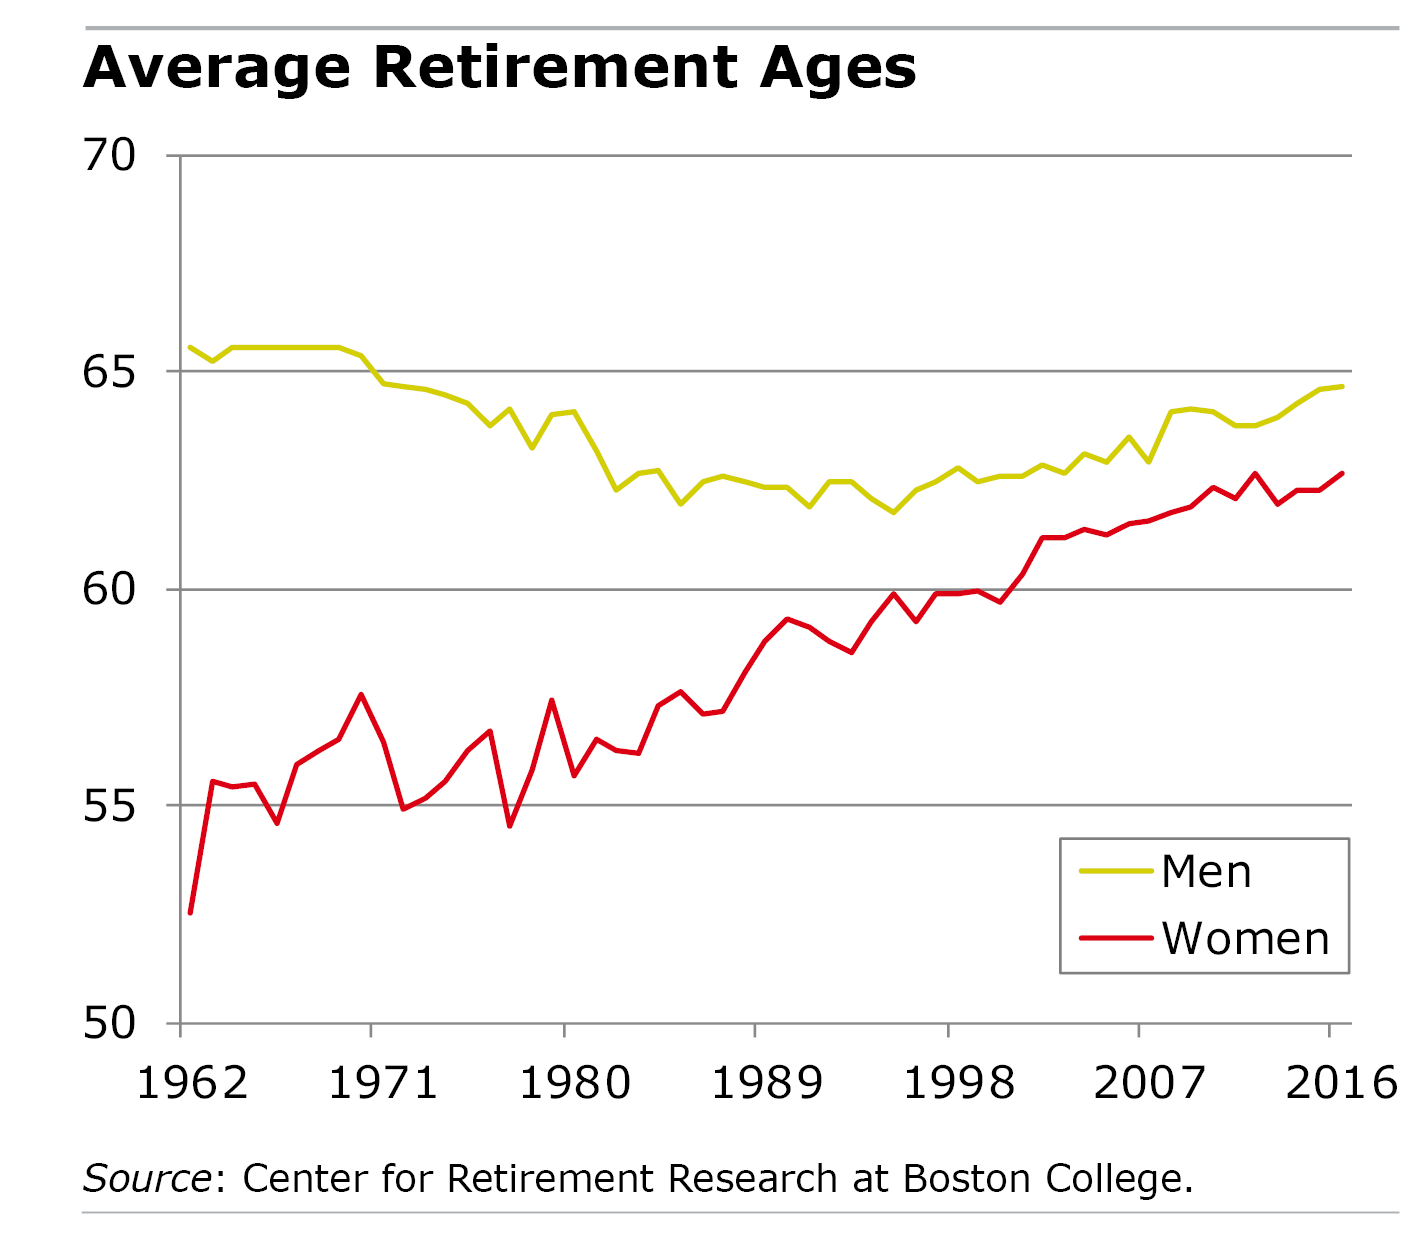 Bar graph showing the average retirement ages for men and women